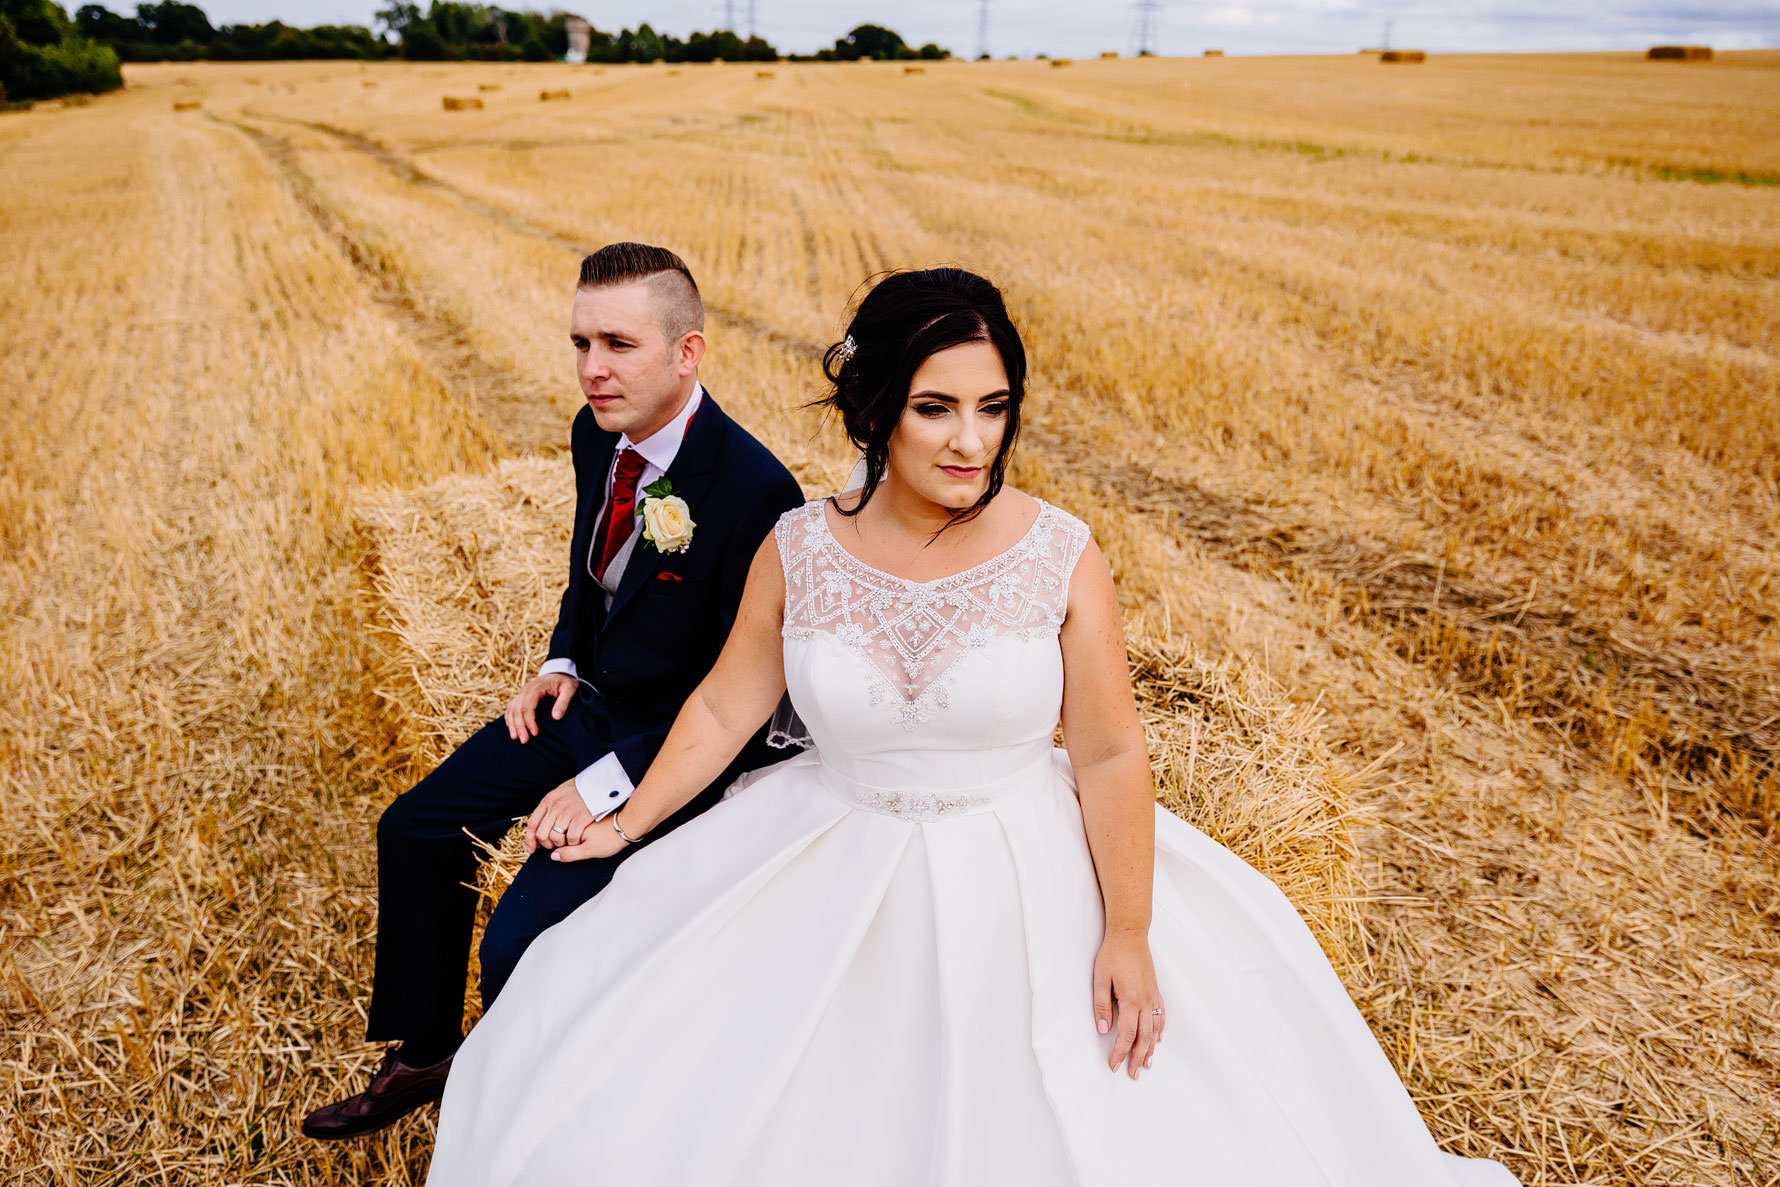 Needham House Wedding Photography By Elliot W Patching